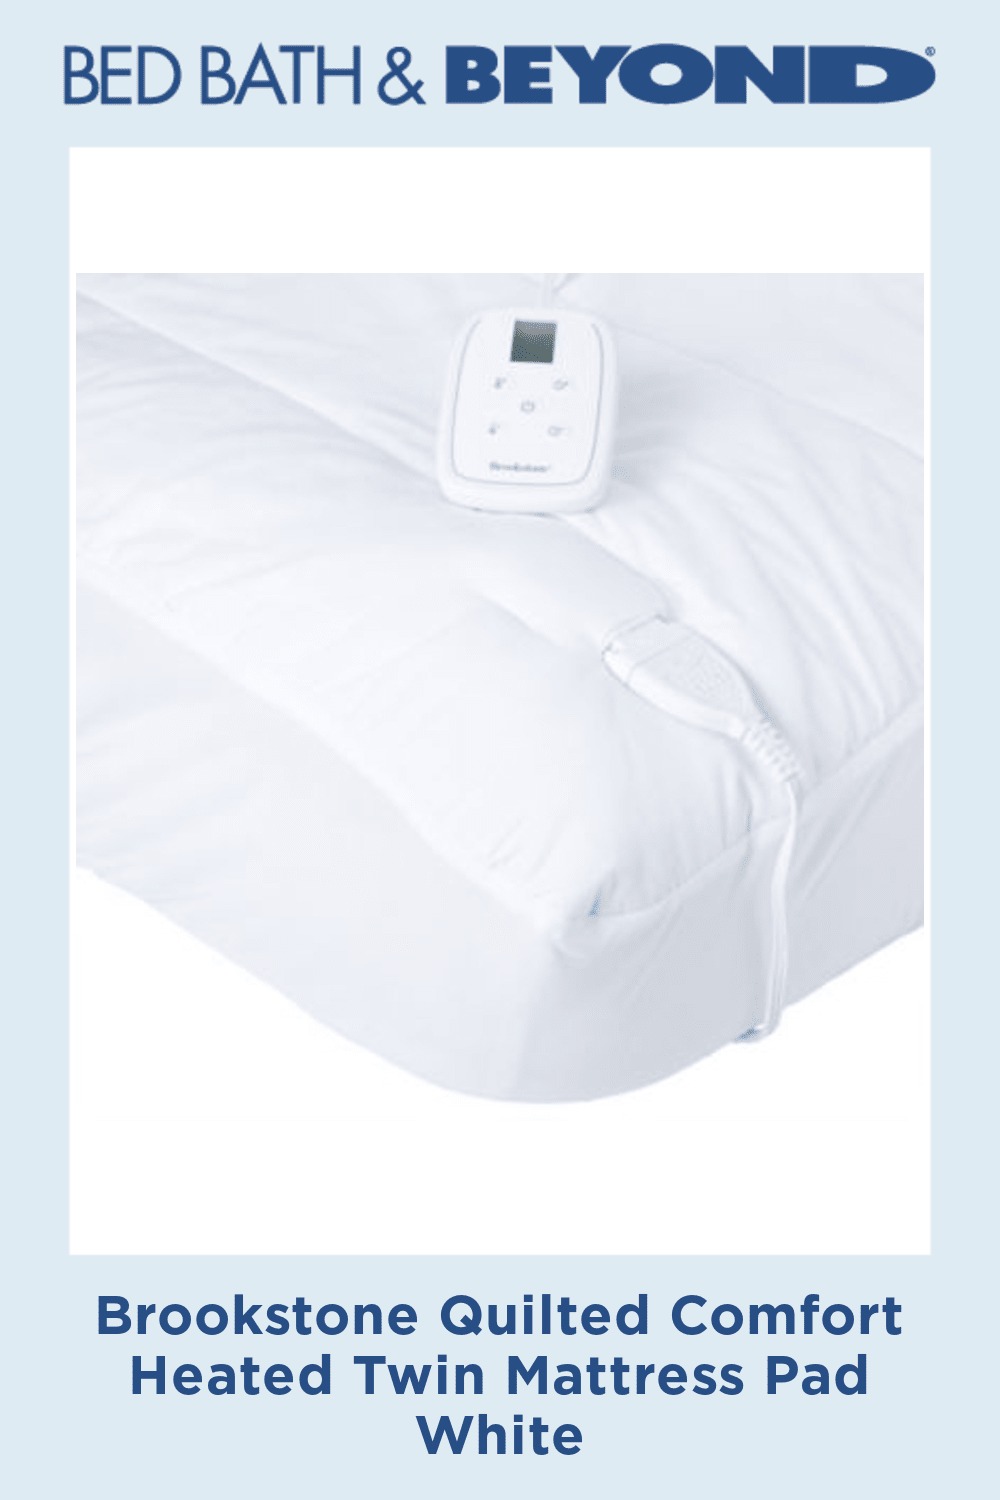 Brookstone Quilted Comfort Heated Twin Mattress Pad White